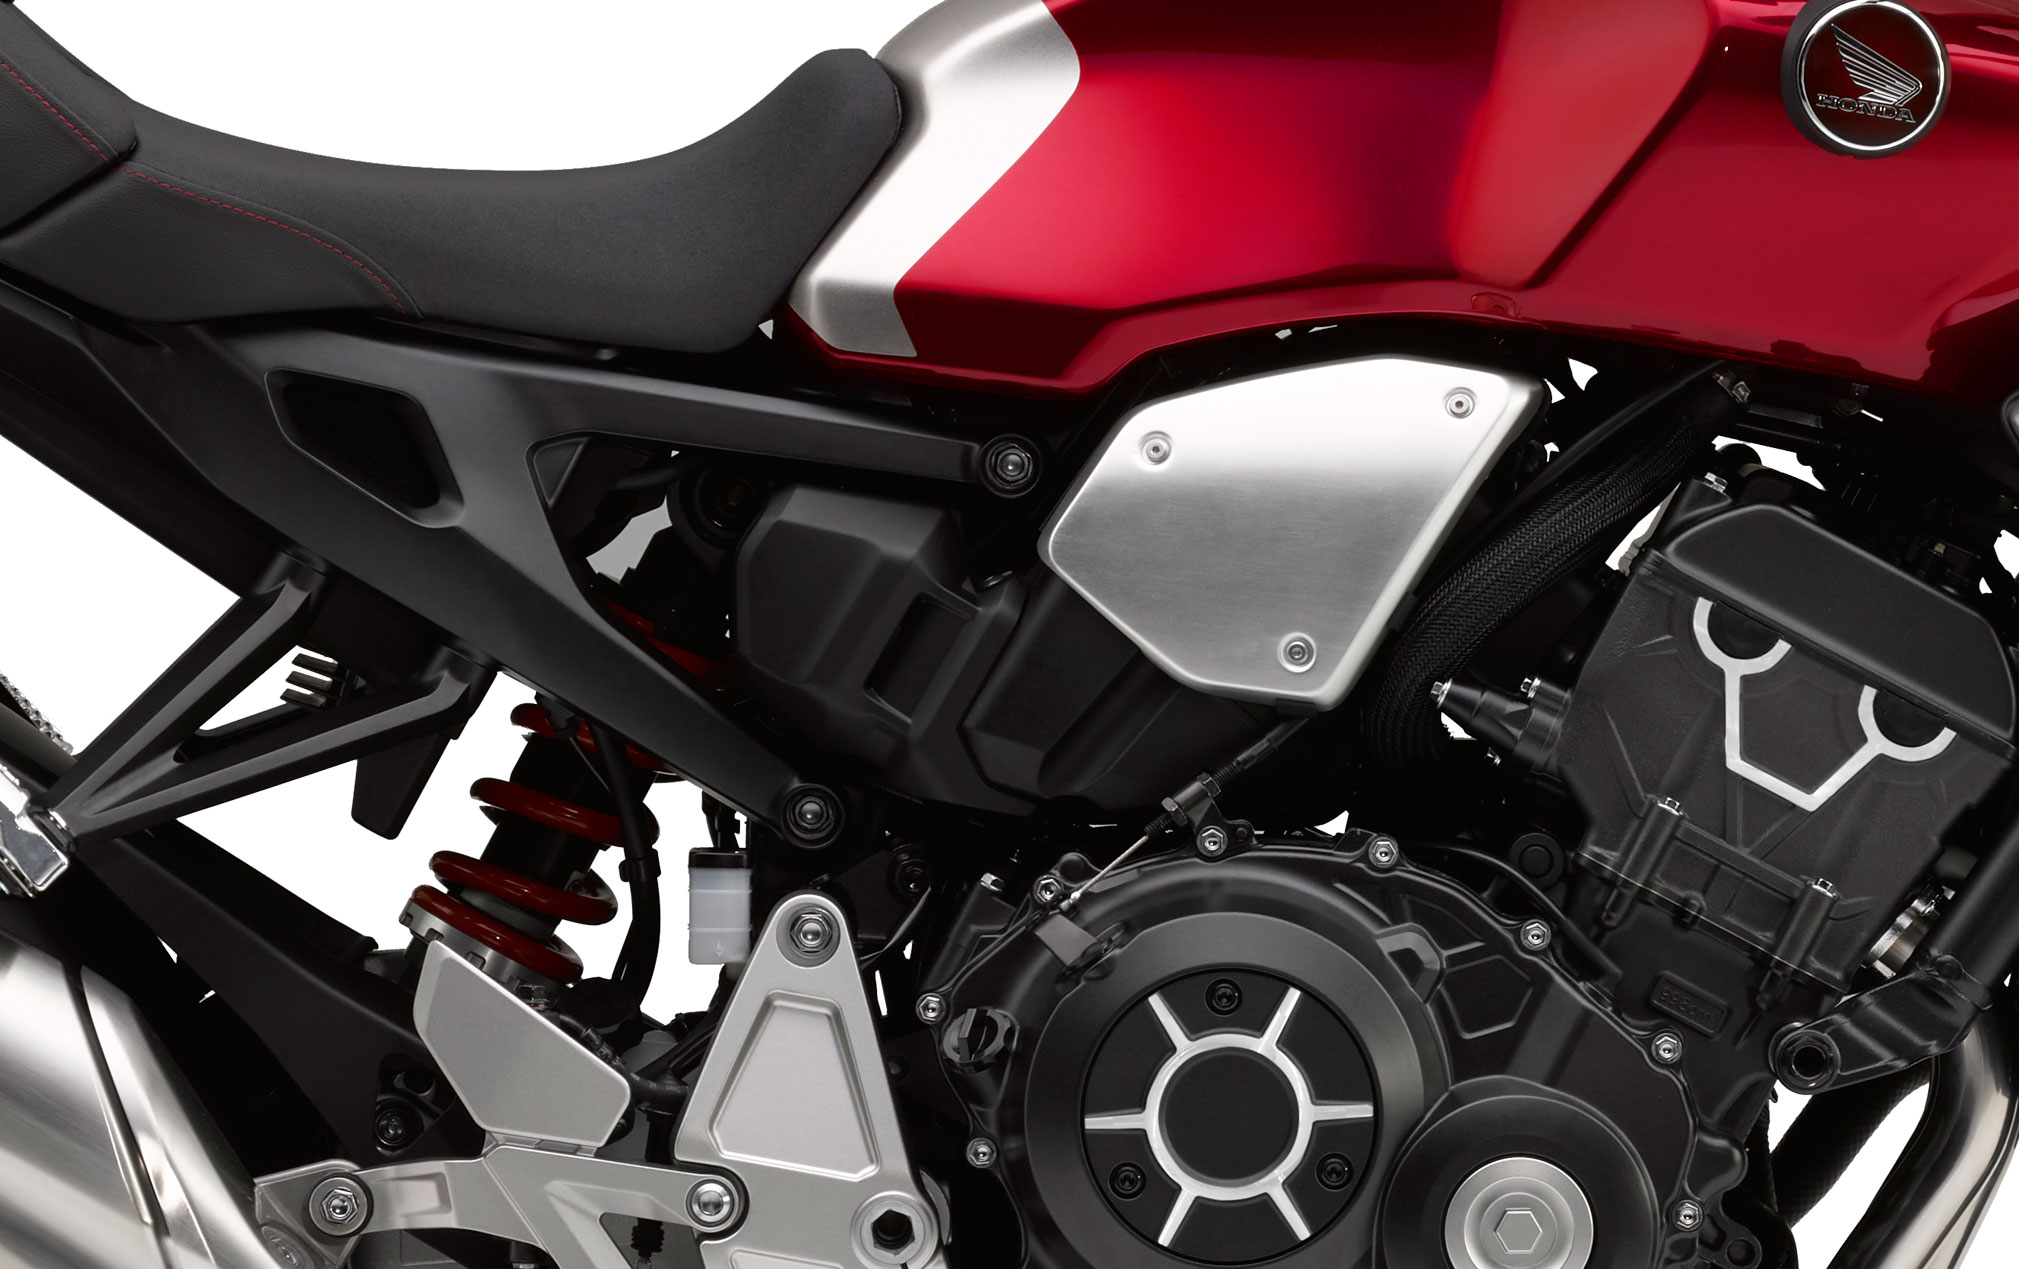 2019 Honda Cb1000r Abs Guide Total Motorcycle